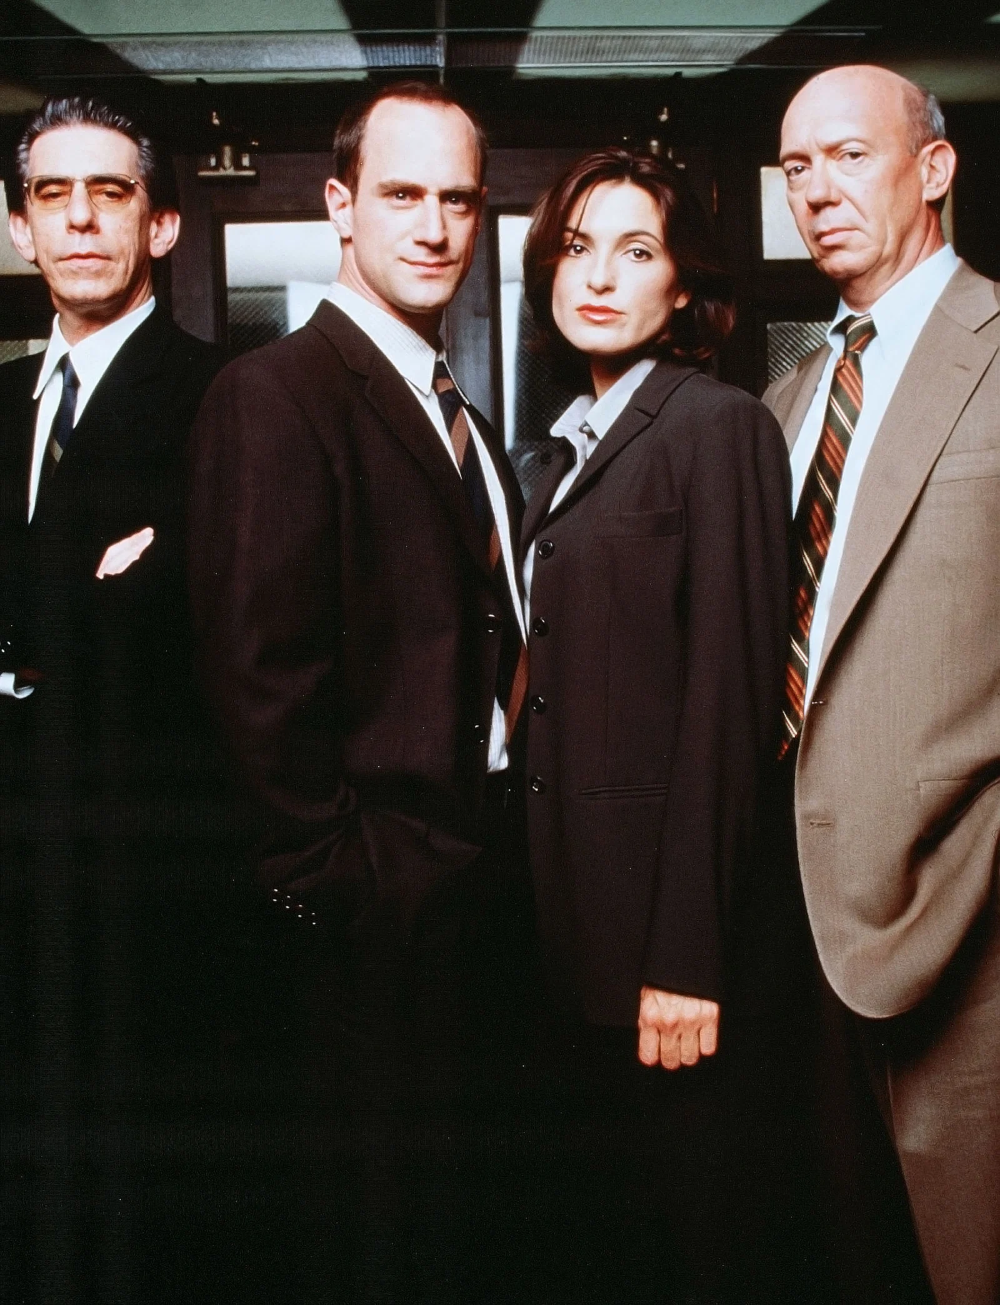 Stars Who Left Law Order Svu Where Are They Now Law And Order Law And Order Svu Svu